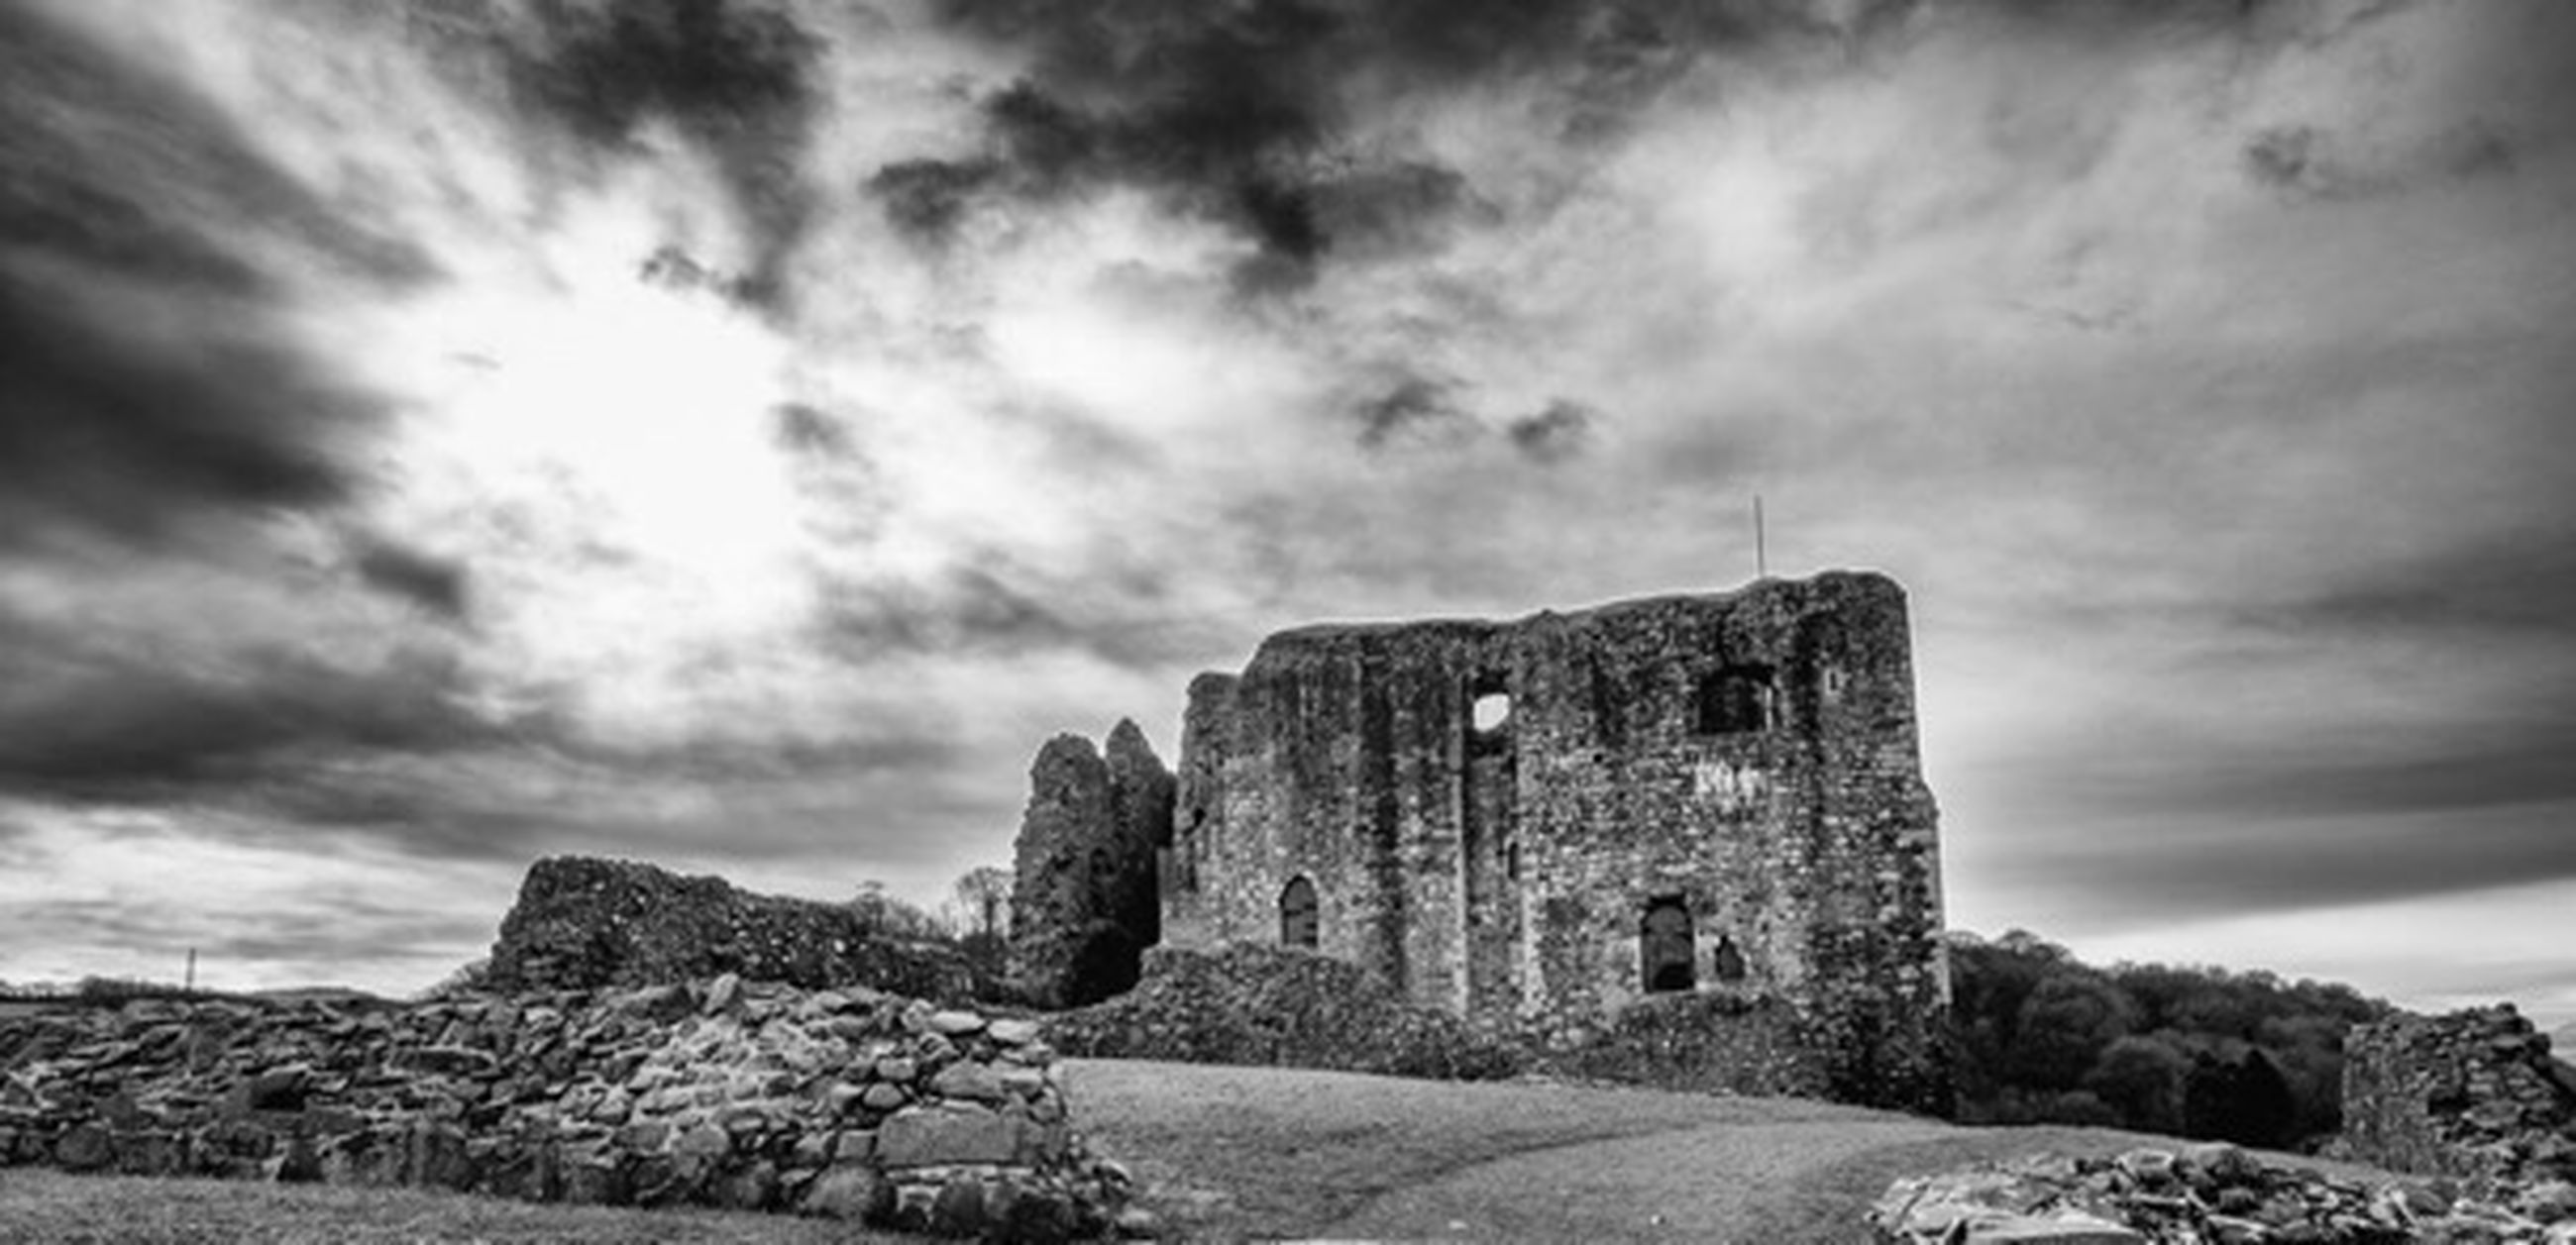 built structure, architecture, old, sky, history, the past, cloud - sky, building exterior, old ruin, castle, outdoors, deterioration, ruined, nature, cloudy, weathered, damaged, remote, medieval, ancient, obsolete, tranquility, non-urban scene, no people, solitude, cloudscape, beauty in nature